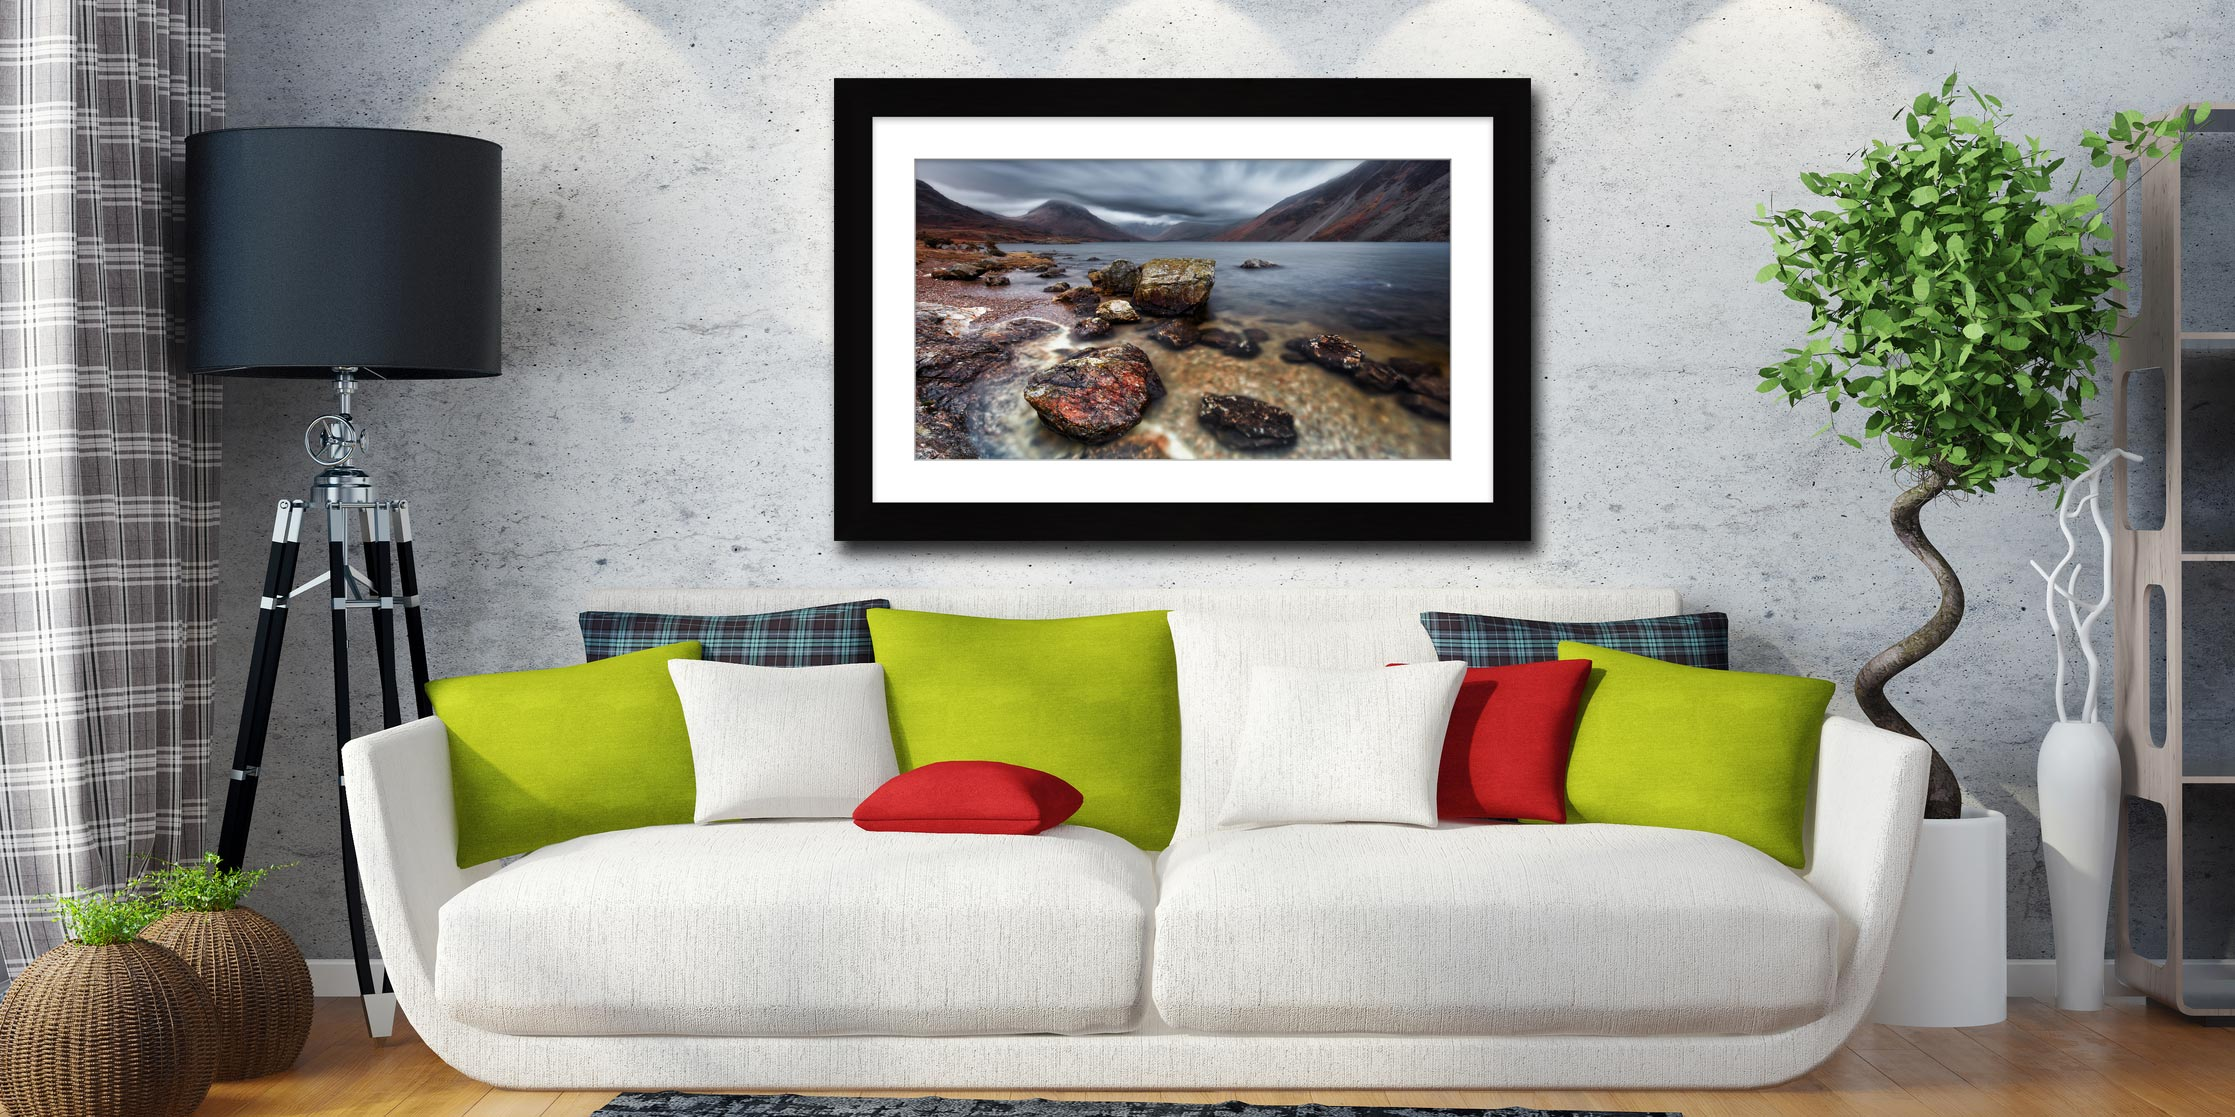 Wast Water Middle Earth - Framed Print with Mount on Wall